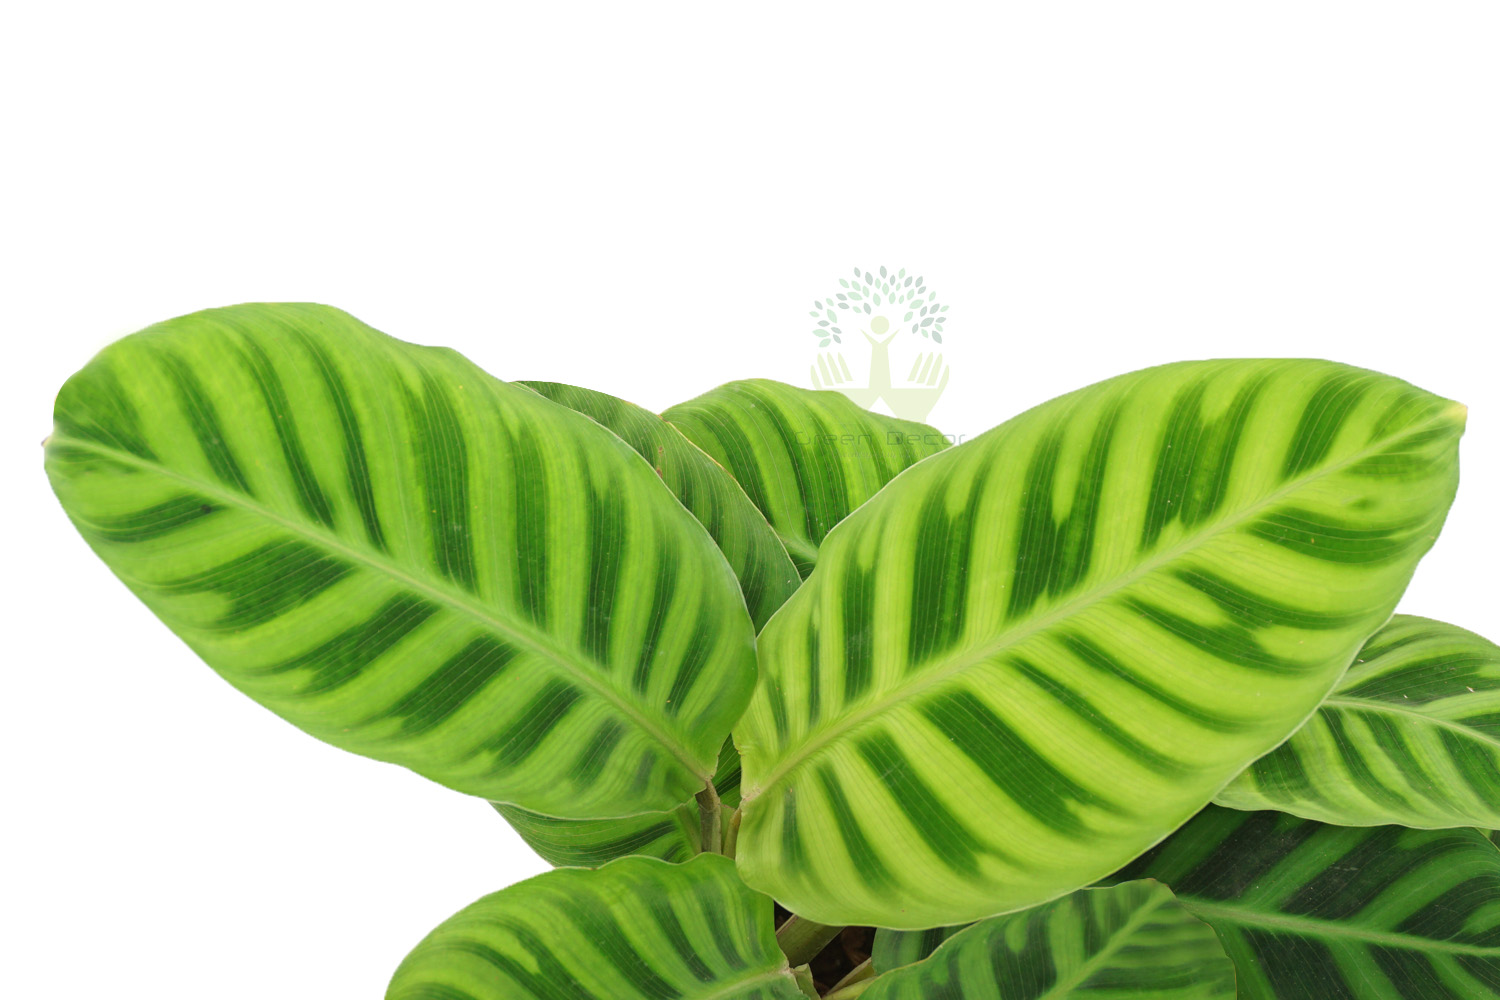 Buy Zebra Plant Leaves View, White Pots and Seeds in Delhi NCR by the best online nursery shop Greendecor.